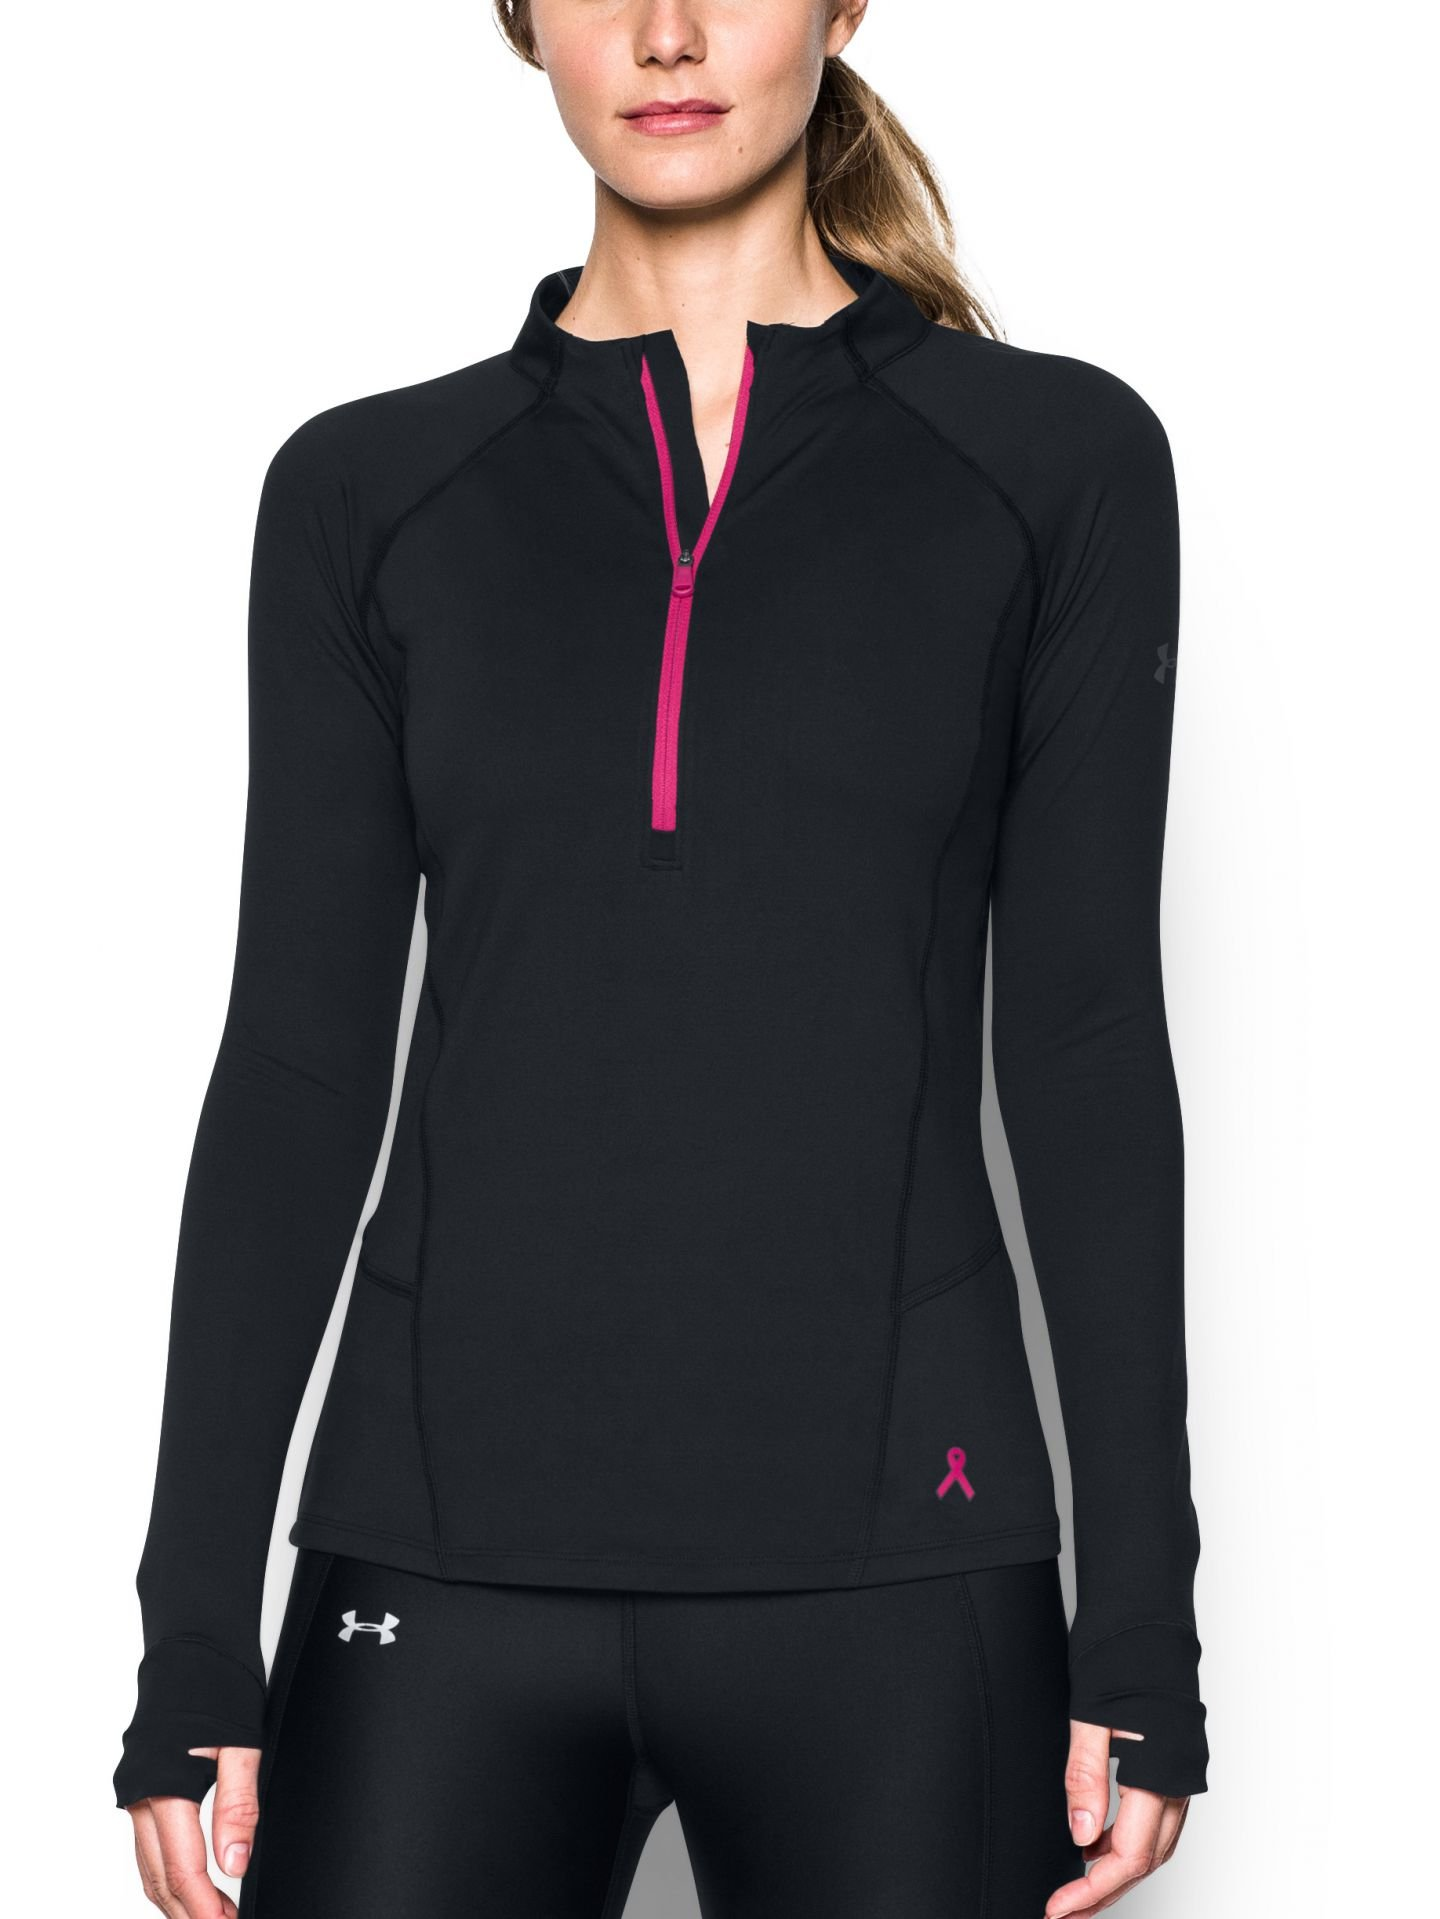 Under Armour Women's Run True 1/2 Zip,Black (002)/Reflective, Small by Under Armour (Image #1)